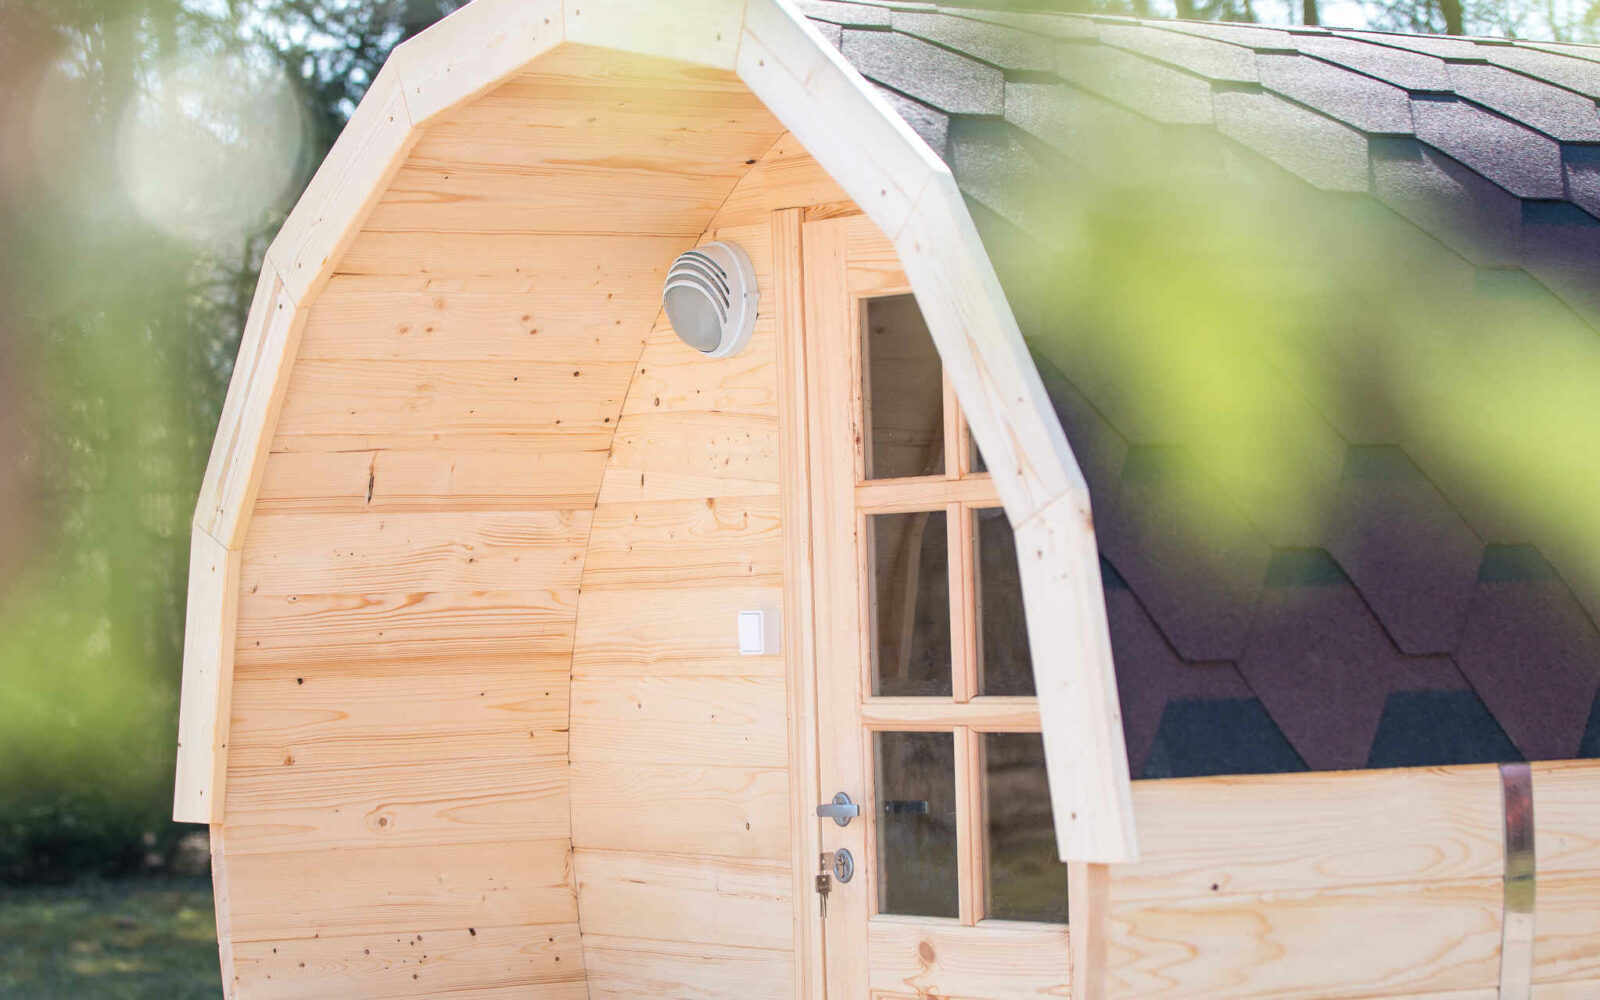 How to maintain your Wooden Home Barrel Sauna